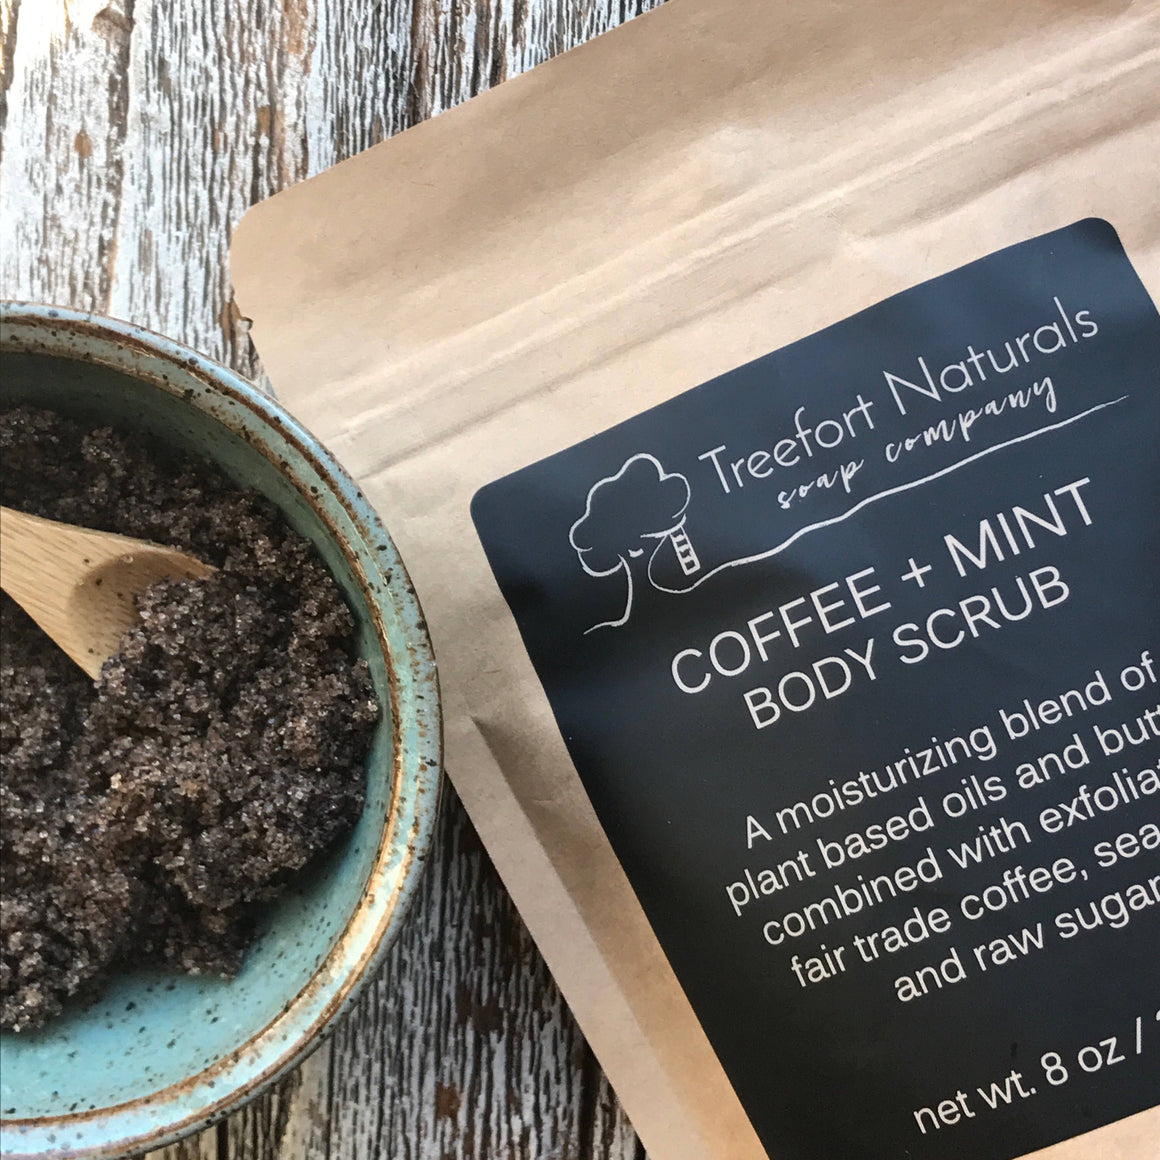 Treefort Naturals Coffee + Mint Body Scrub